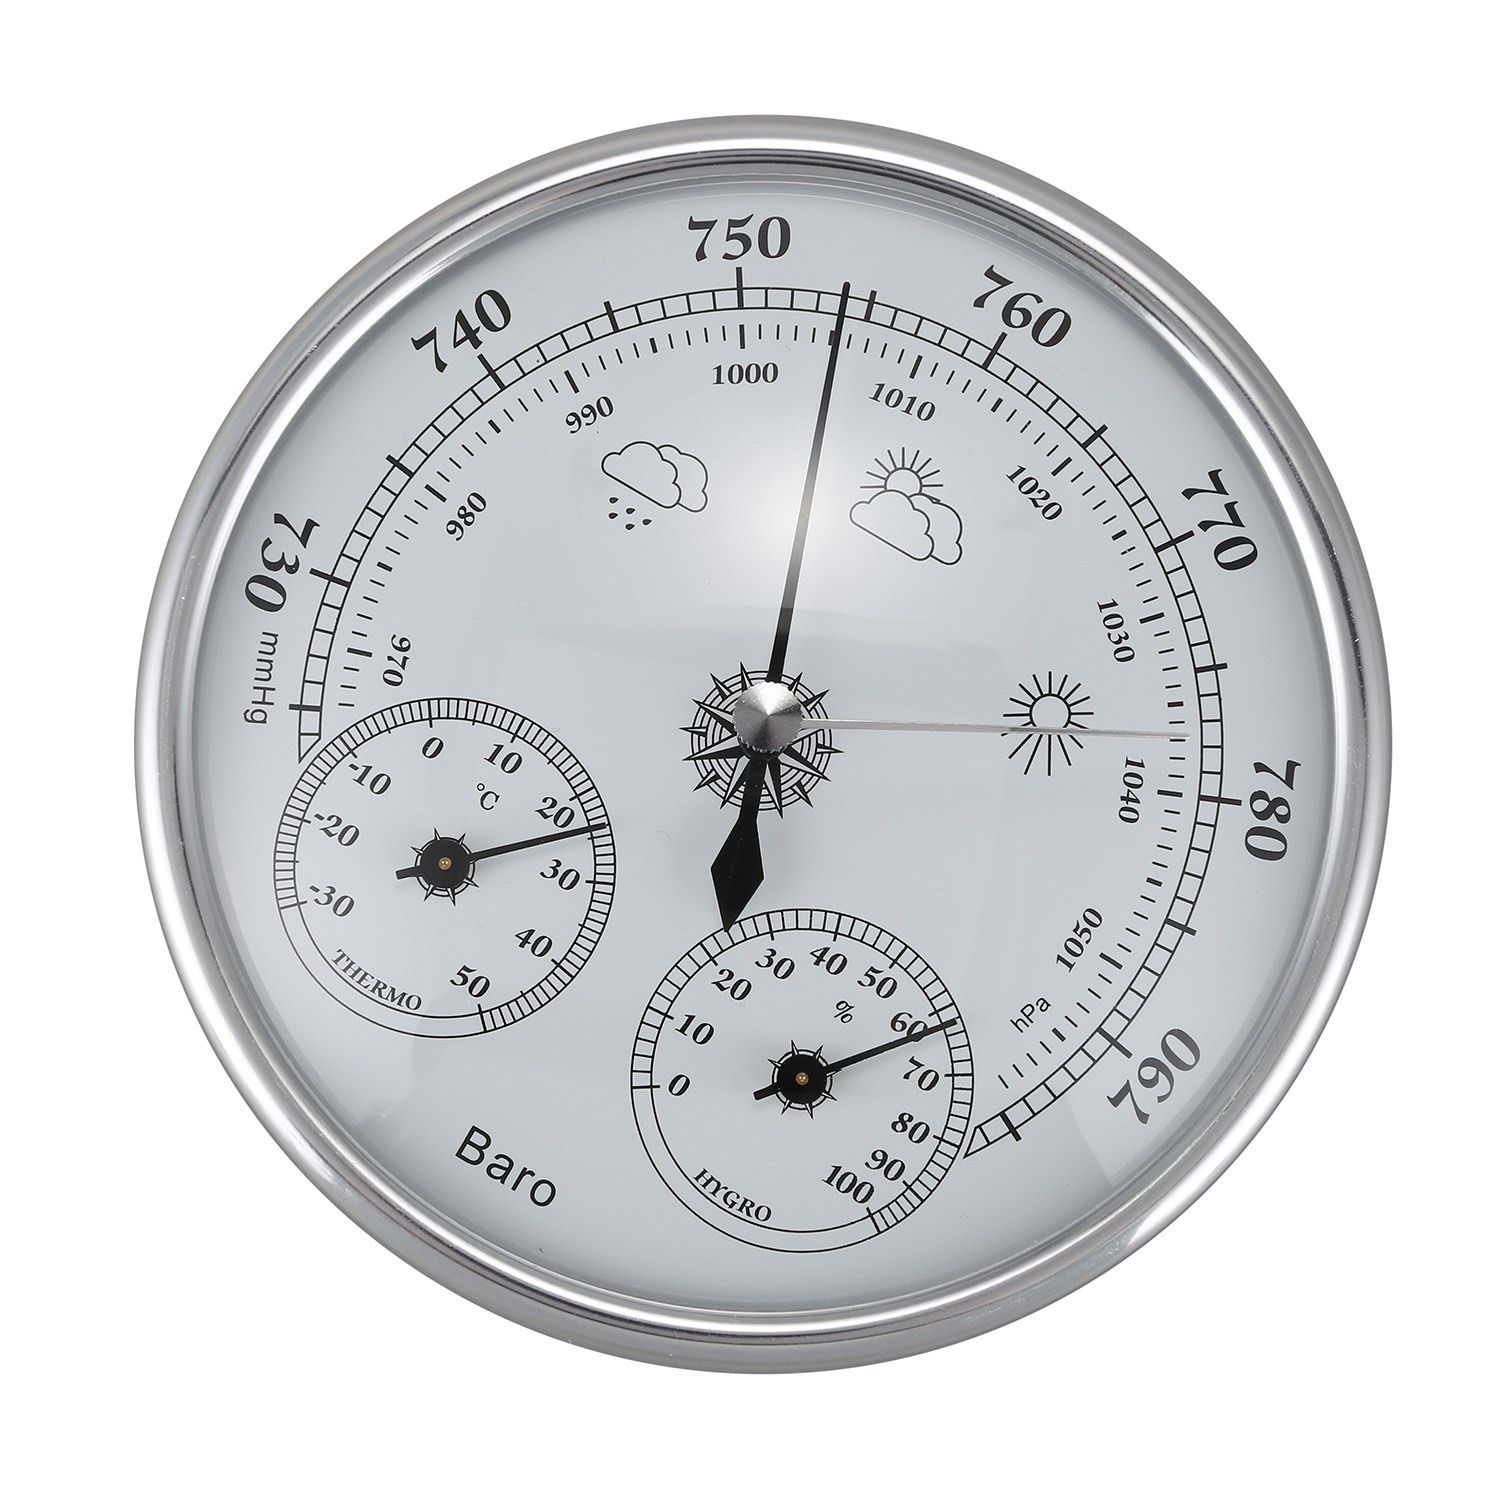 HLZS-Wall Mounted Household Thermometer Hygrometer High Accuracy Pressure Gauge Air Weather Instrument Barometer